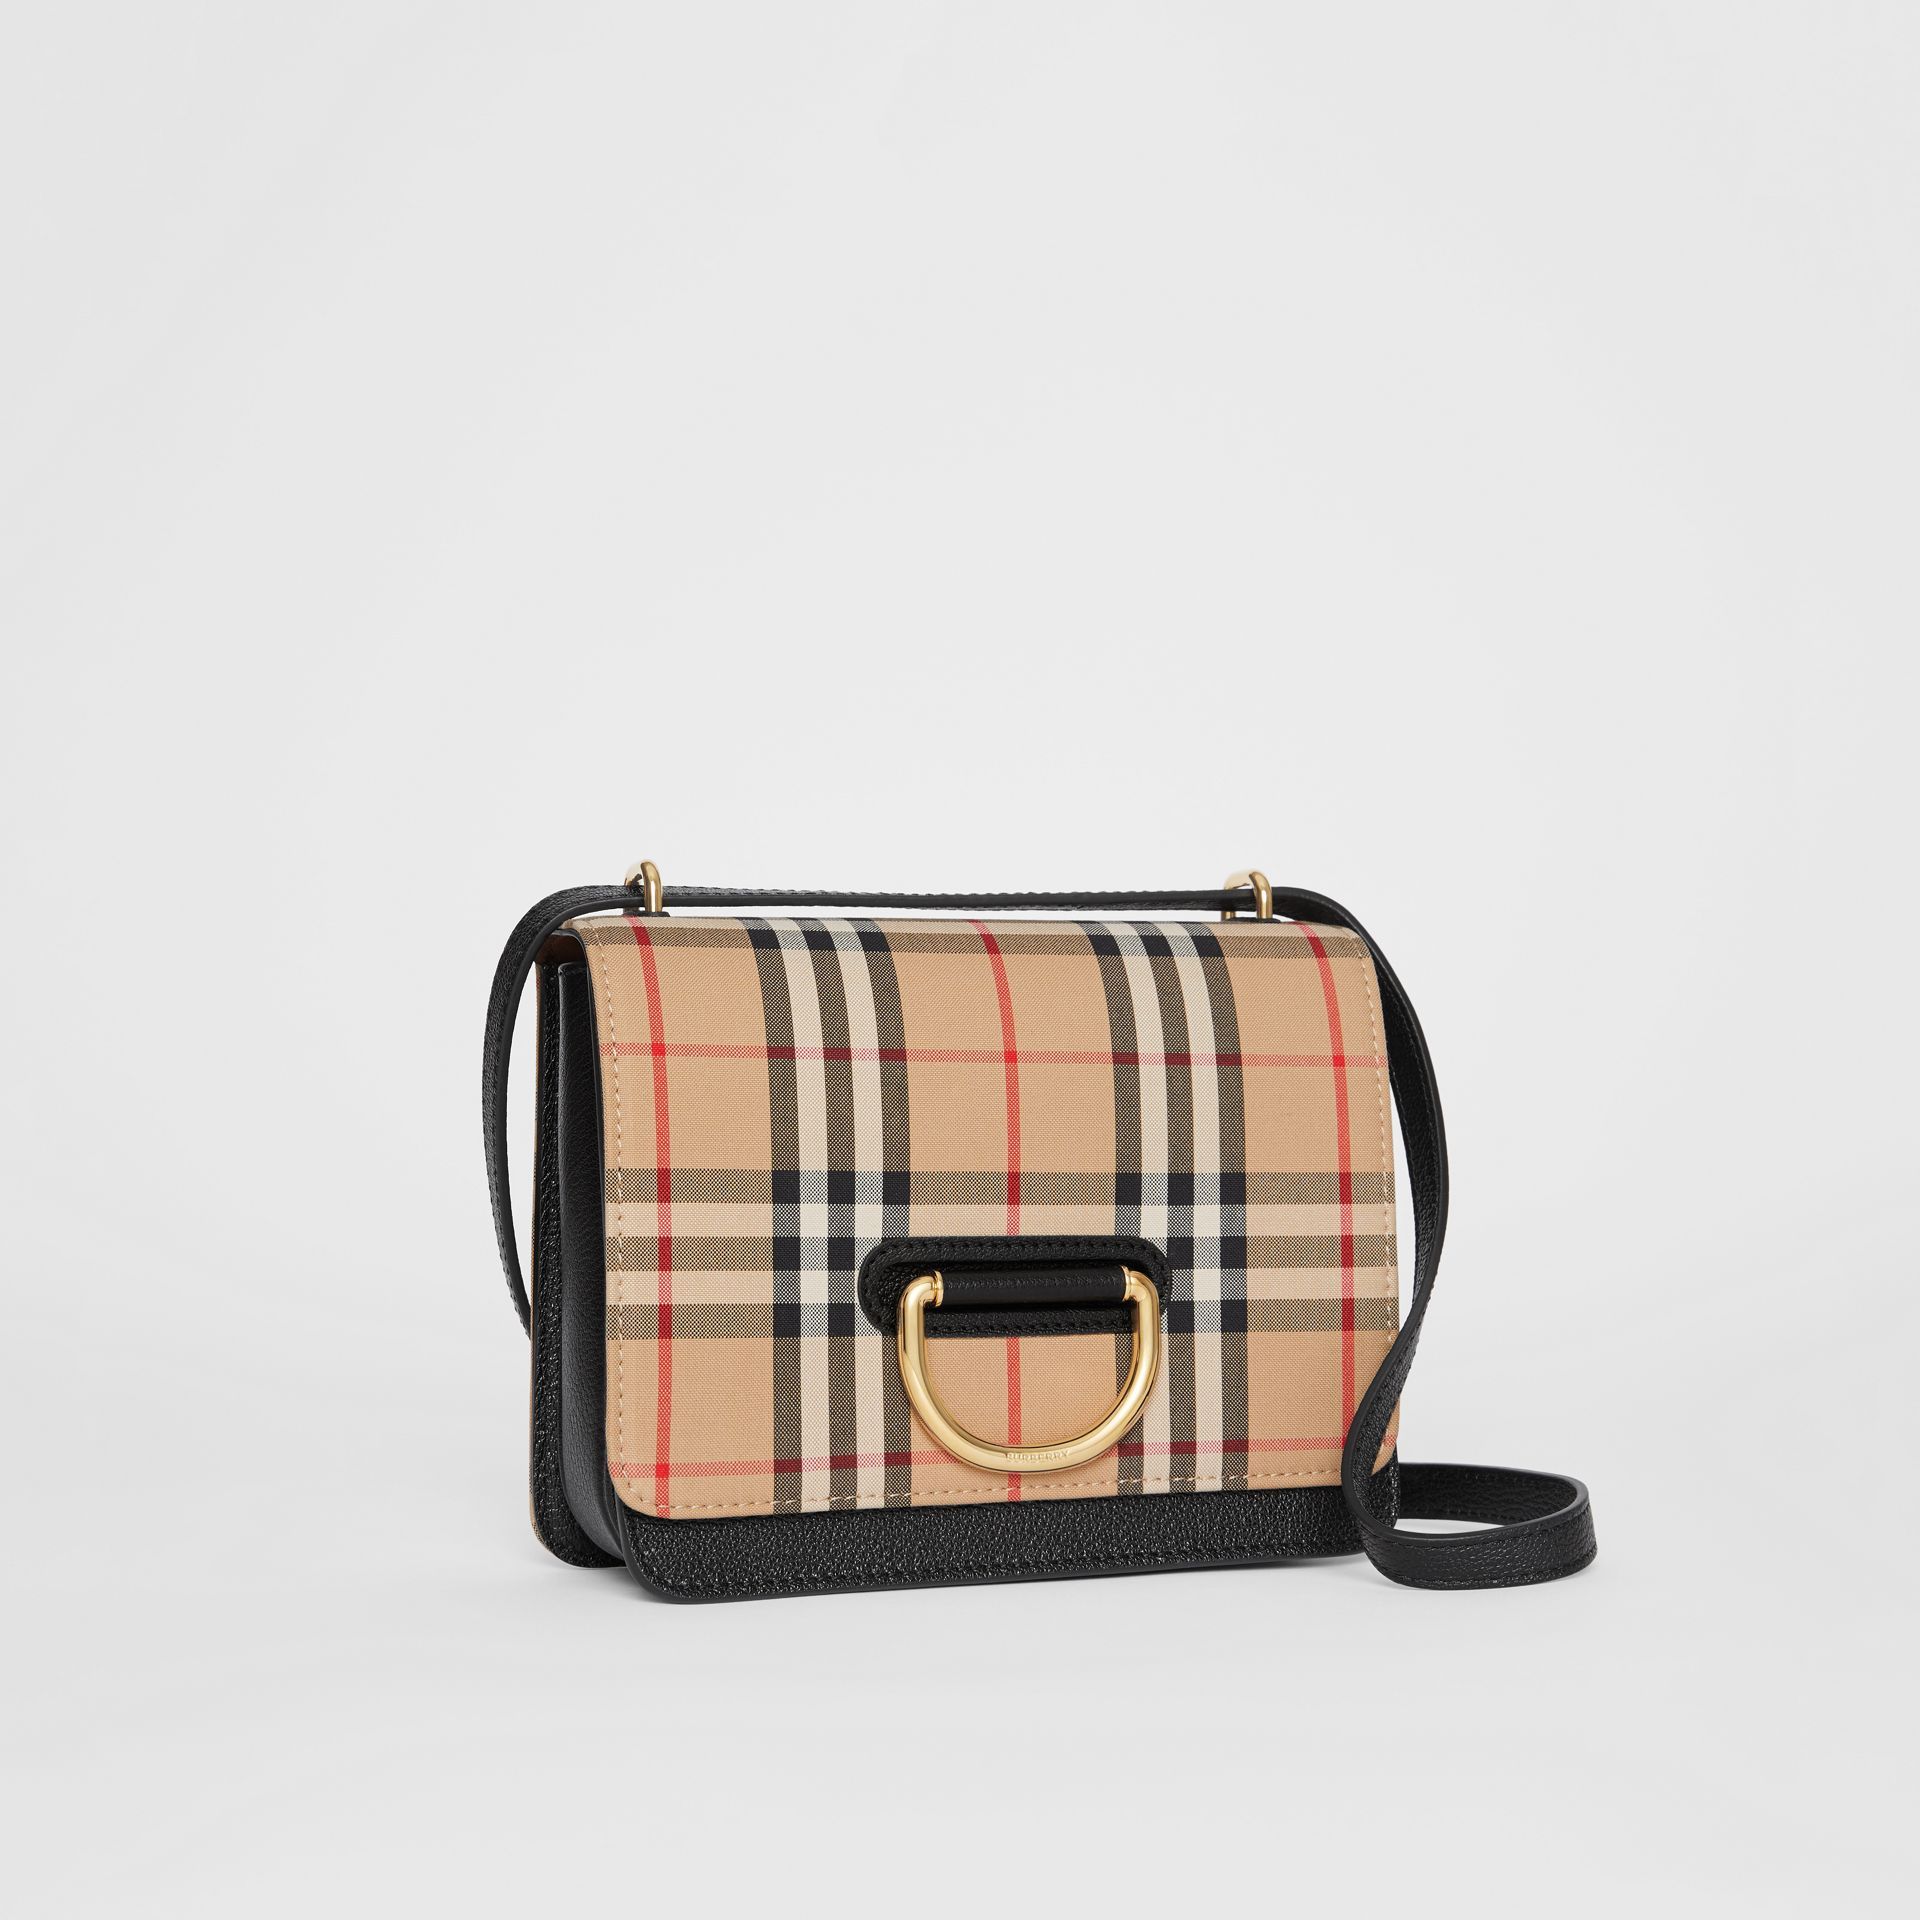 The Small Vintage Check and Leather D-ring Bag in Black - Women | Burberry United States - gallery image 8